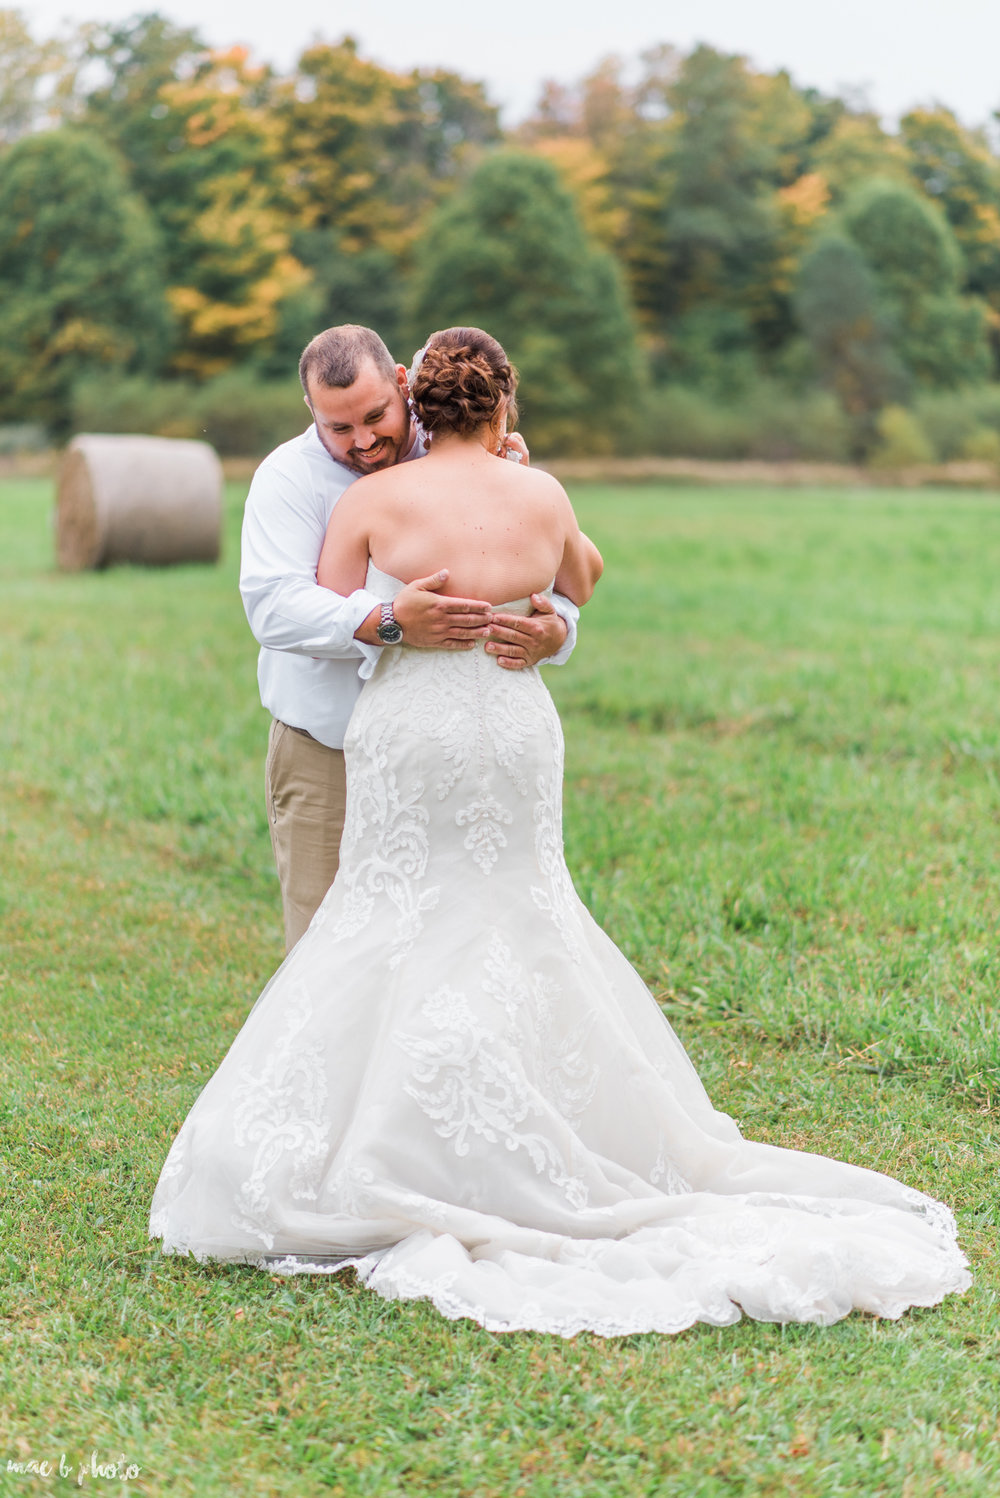 Sarah & Dustin's Rustic Chic Barn Wedding at Hartford Hill Winery in Hartford, Ohio by Mae B Photo-65.jpg